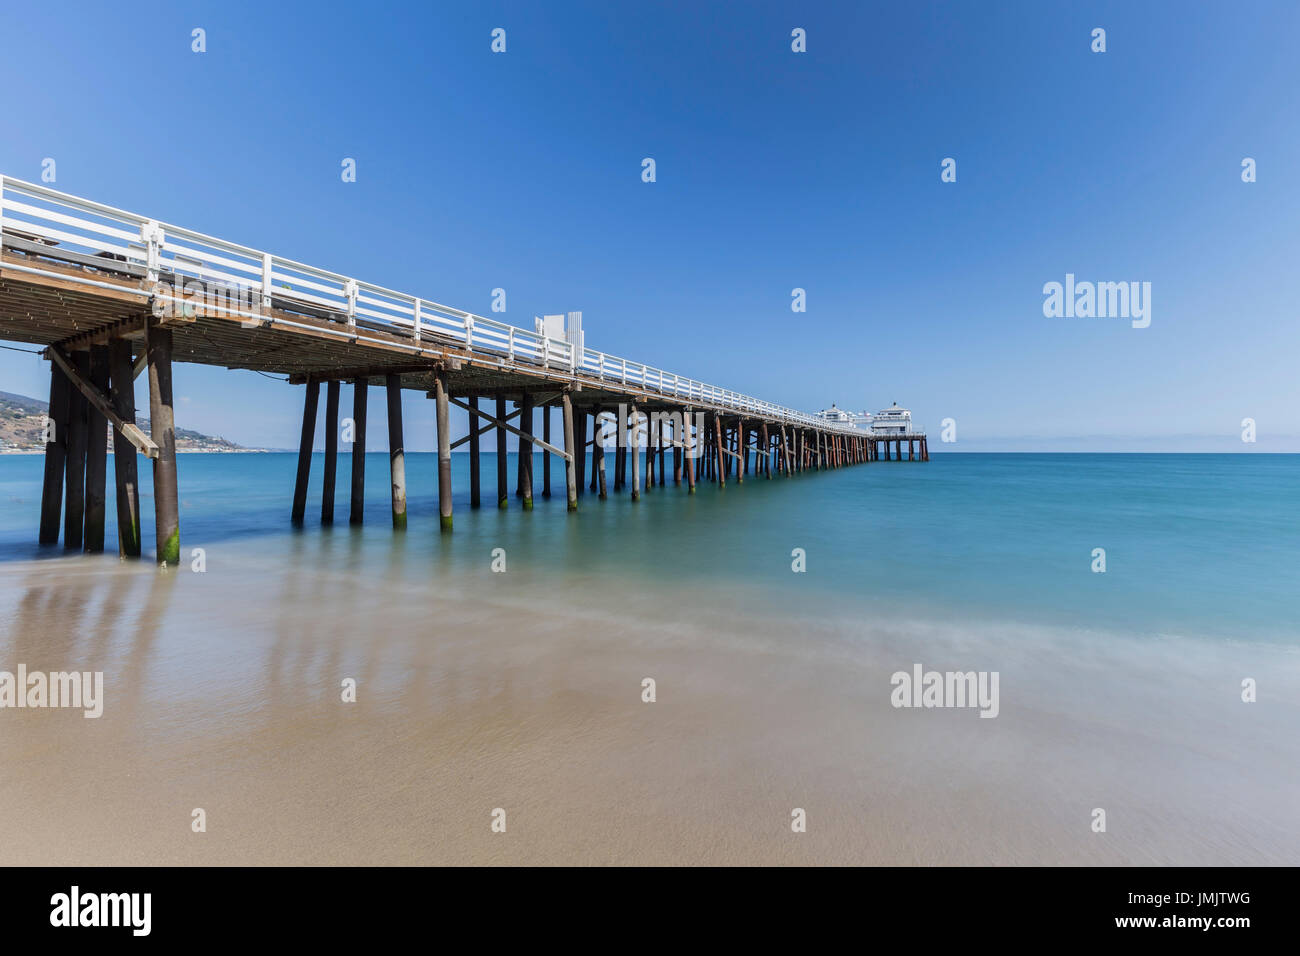 Malibu Pier beach with motion blur water near Los Angeles in California. - Stock Image